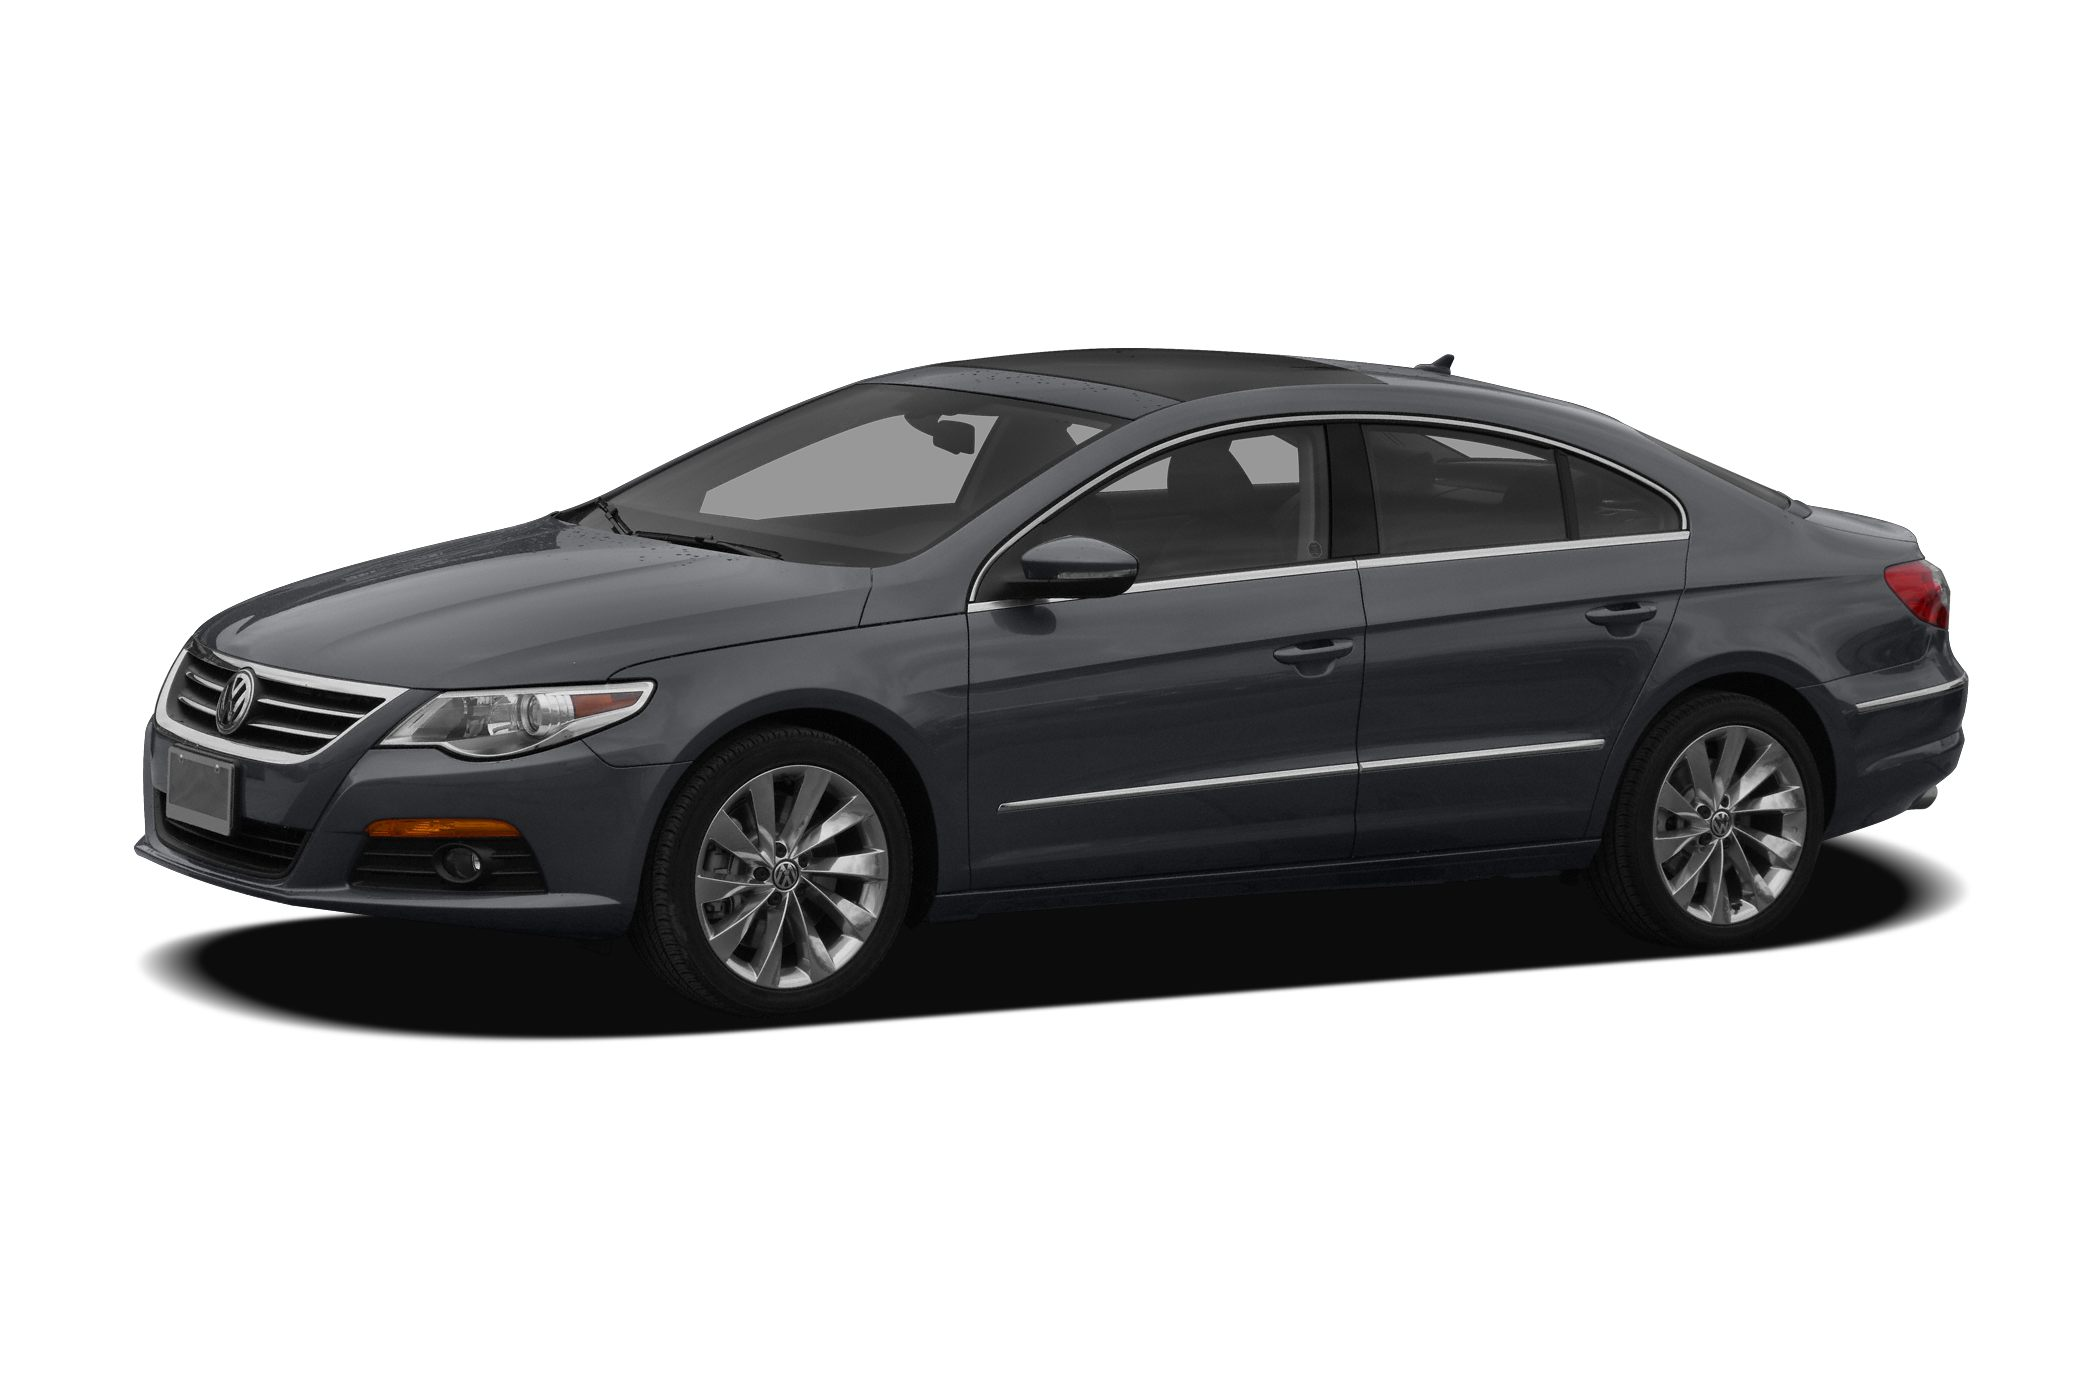 2010 Volkswagen CC Sport Snag a deal on this 2010 Volkswagen CC Sport while we have it Spacious y